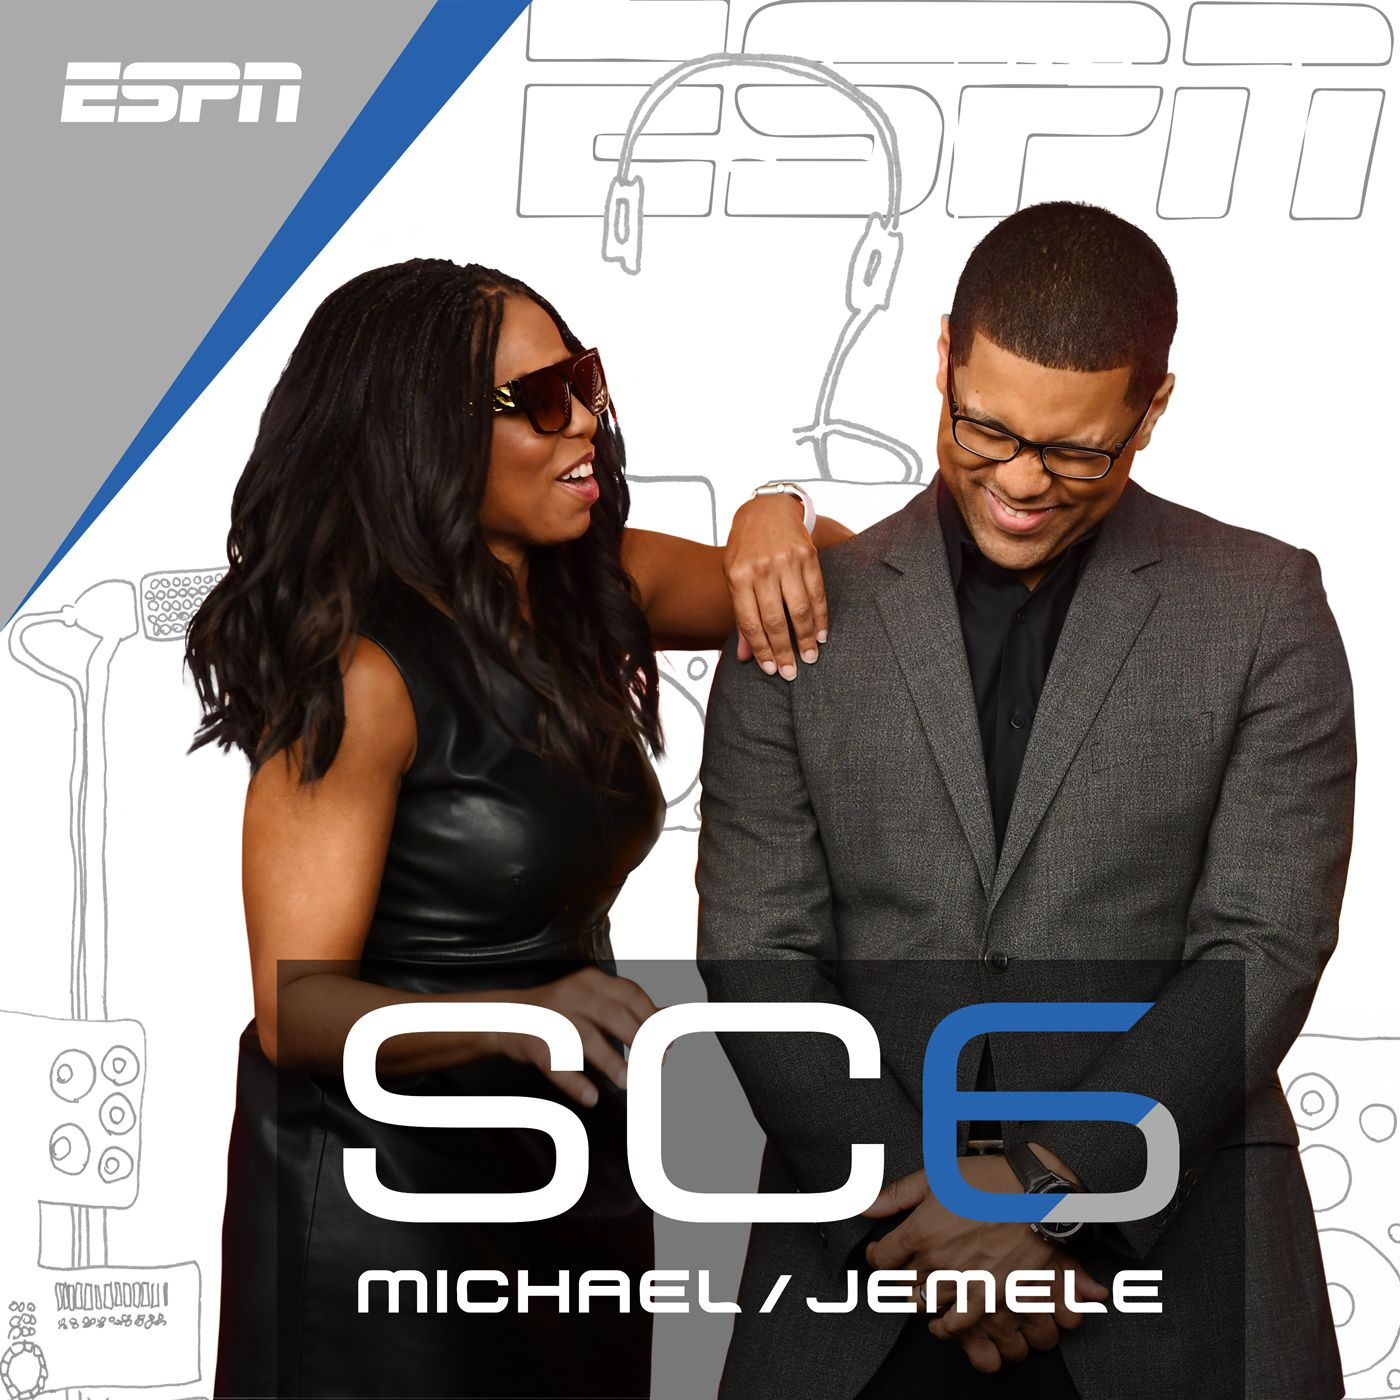 ESPN - All Podcasts - Chartable